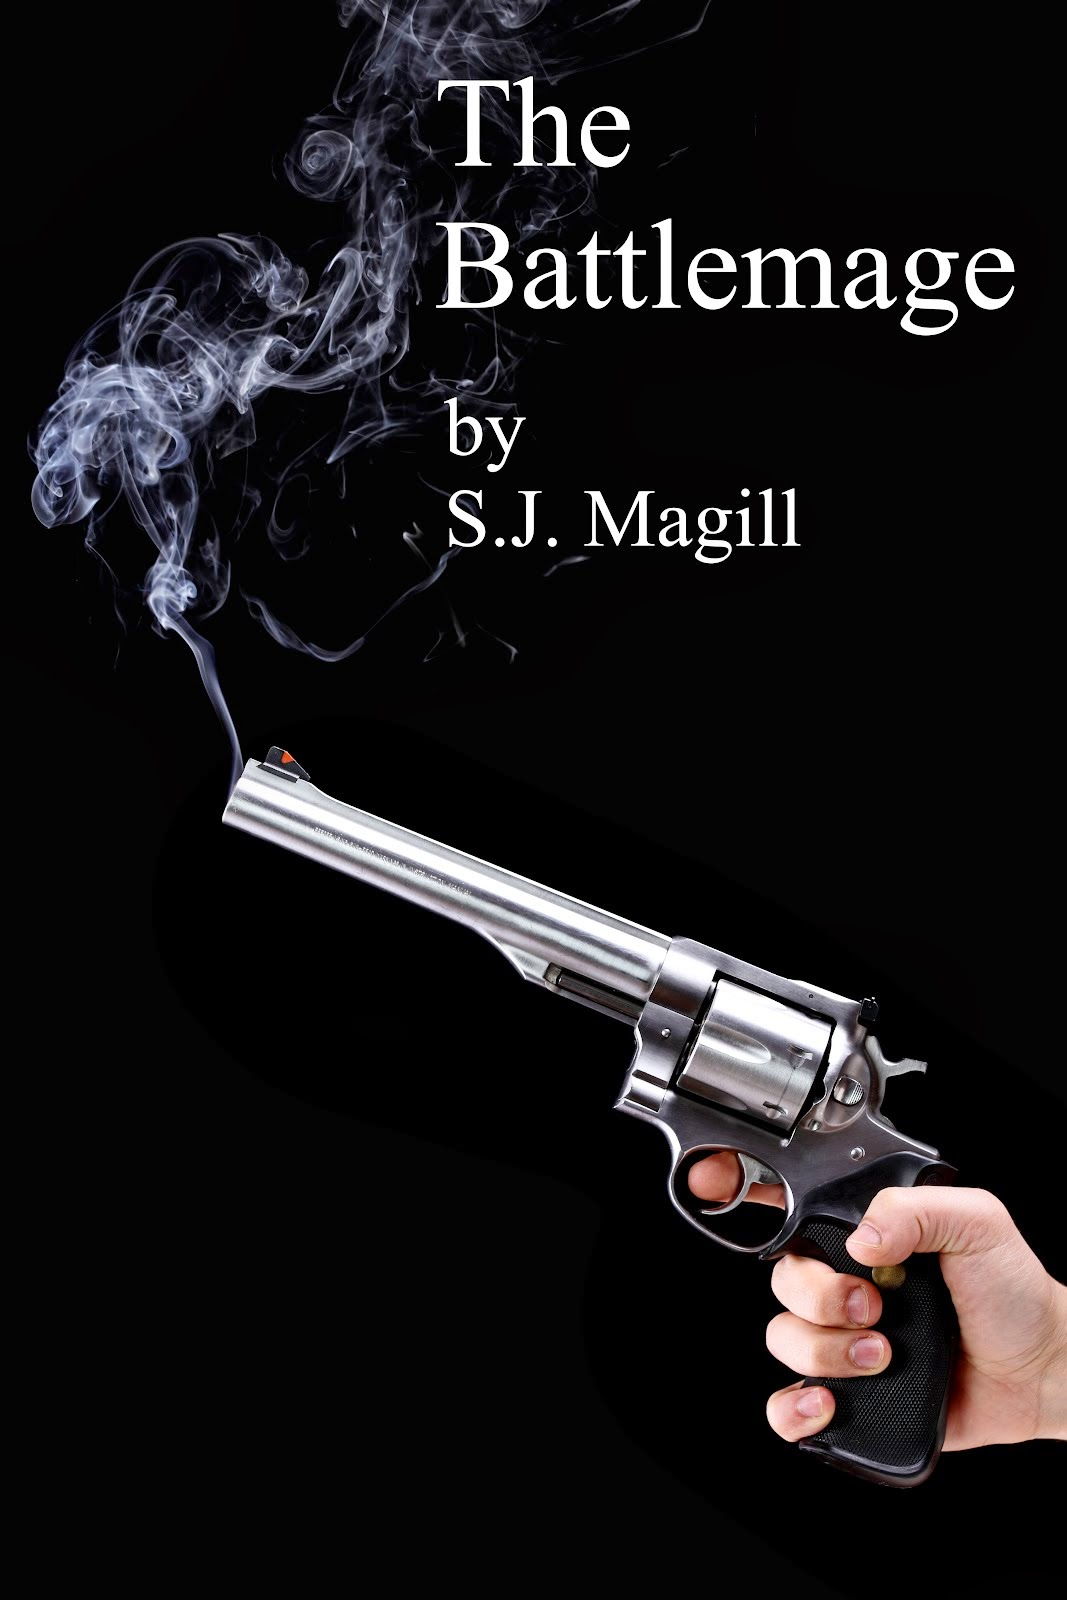 The Battlemage (Link to Amazon.com)